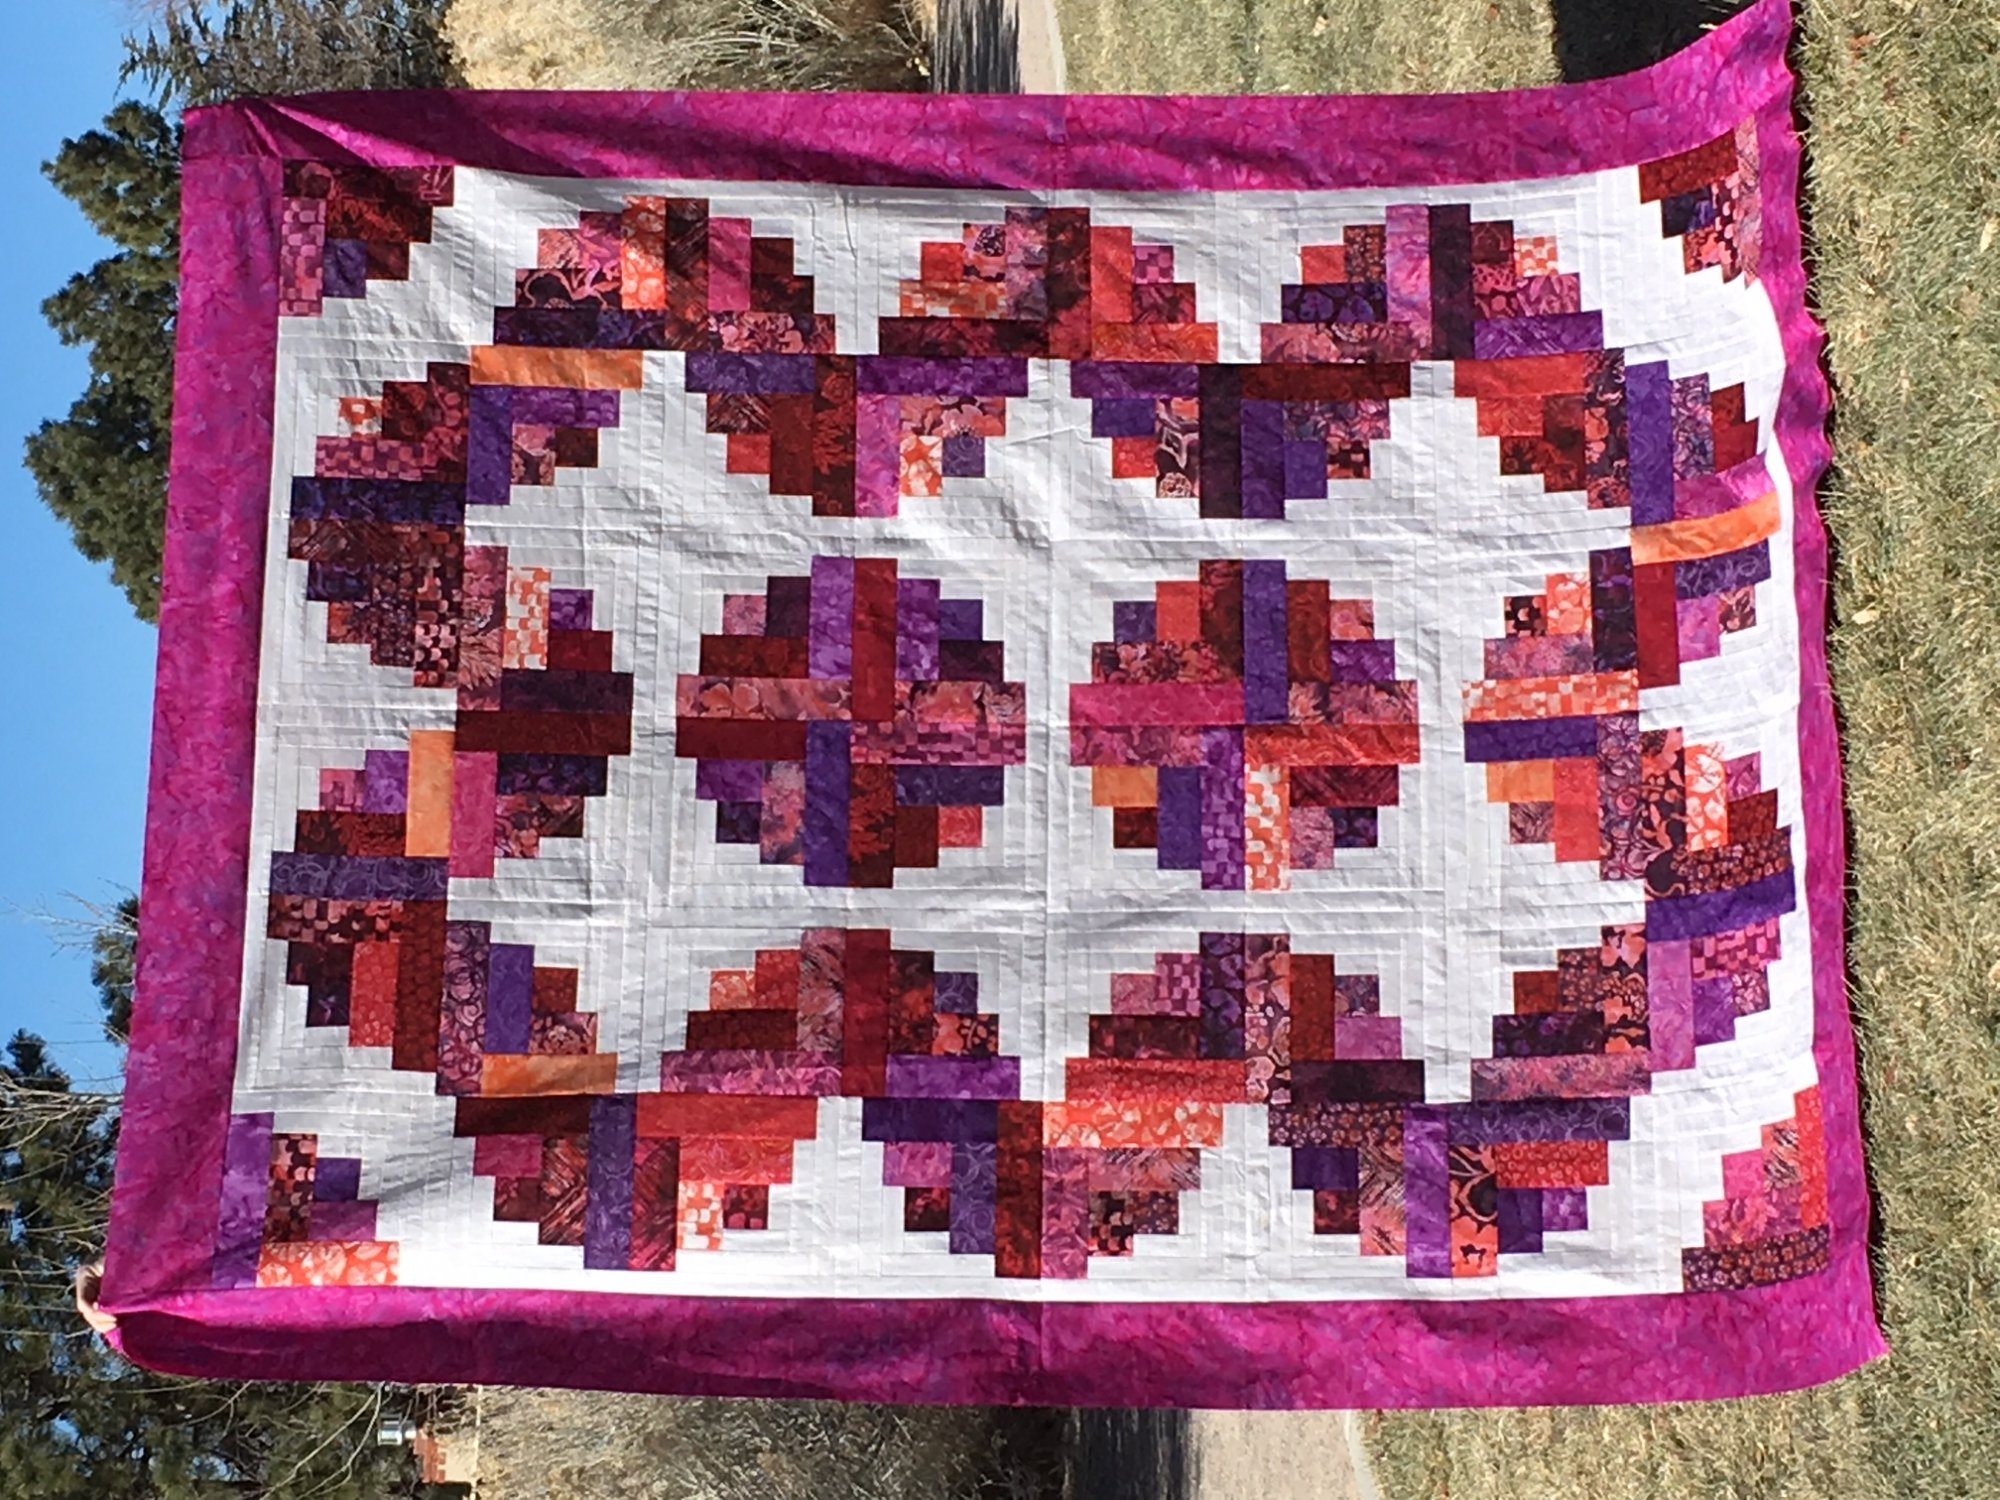 beatrice sweet set bear cabins listings full f rustic quilt queen gwen bedspread country bt lodge log q cabin